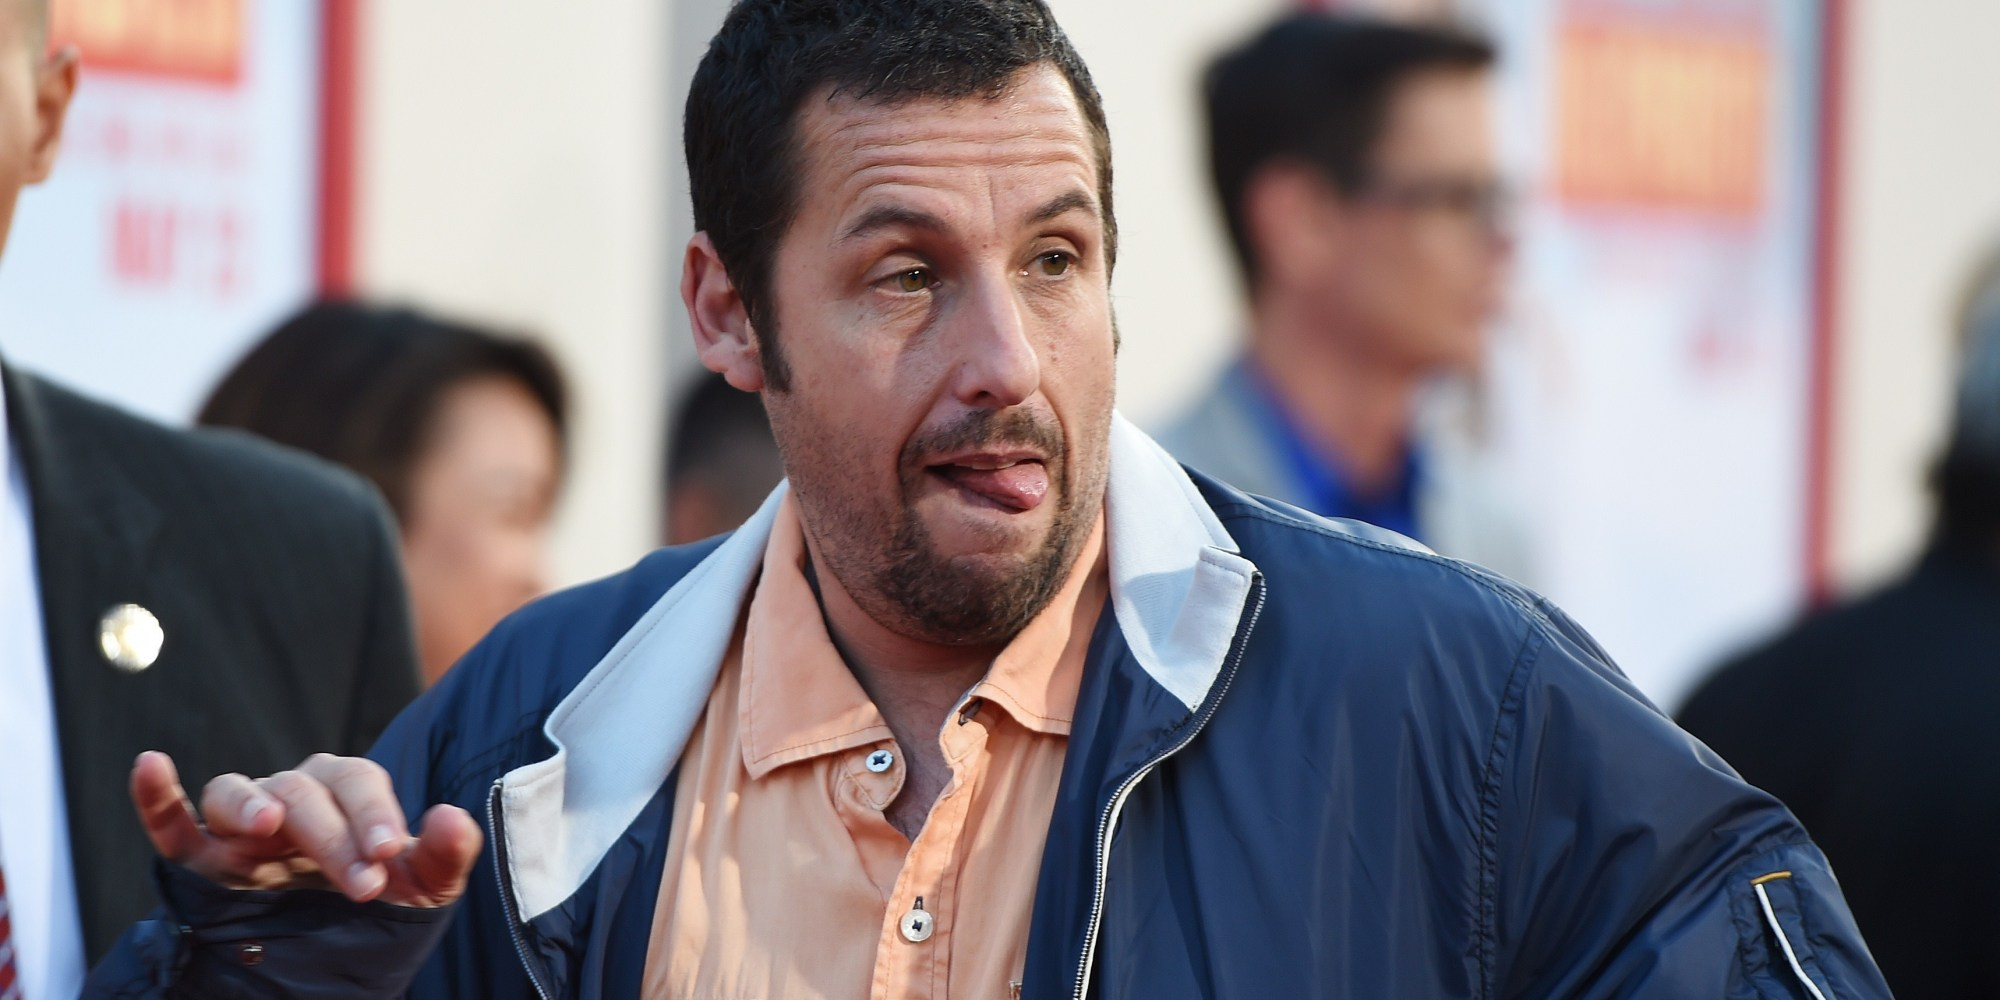 NYT Review: Adam Sandler's 'Blended' Will 'Make Your Children...